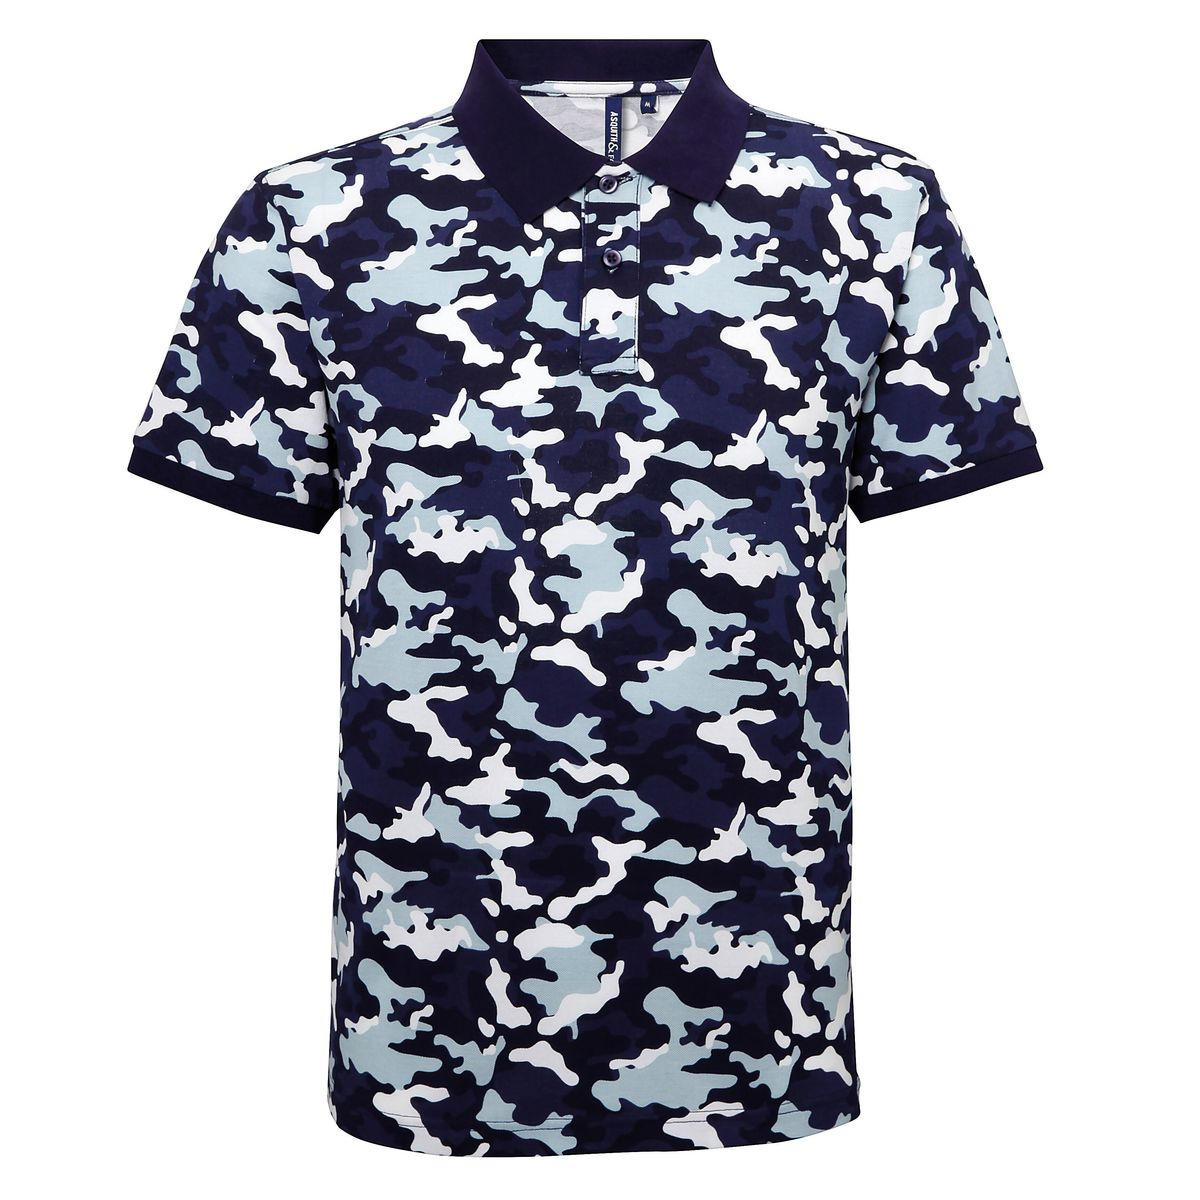 Polo camouflage - army homme - AQ018 - bleu